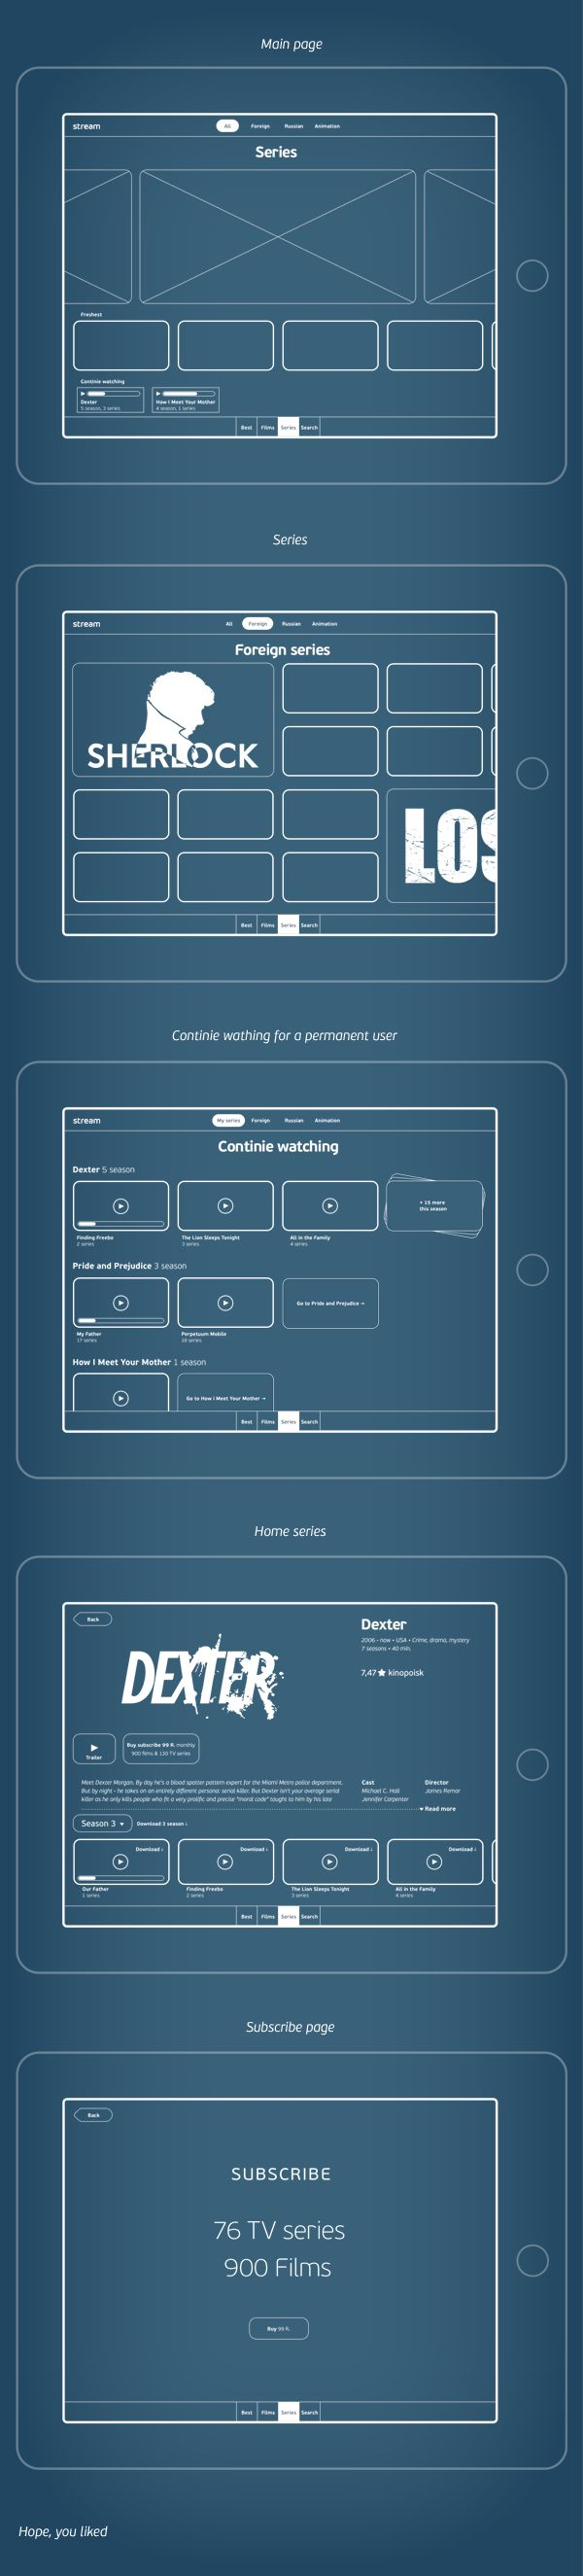 Series app wireframe by Vladimir Vorobyev, via Behance